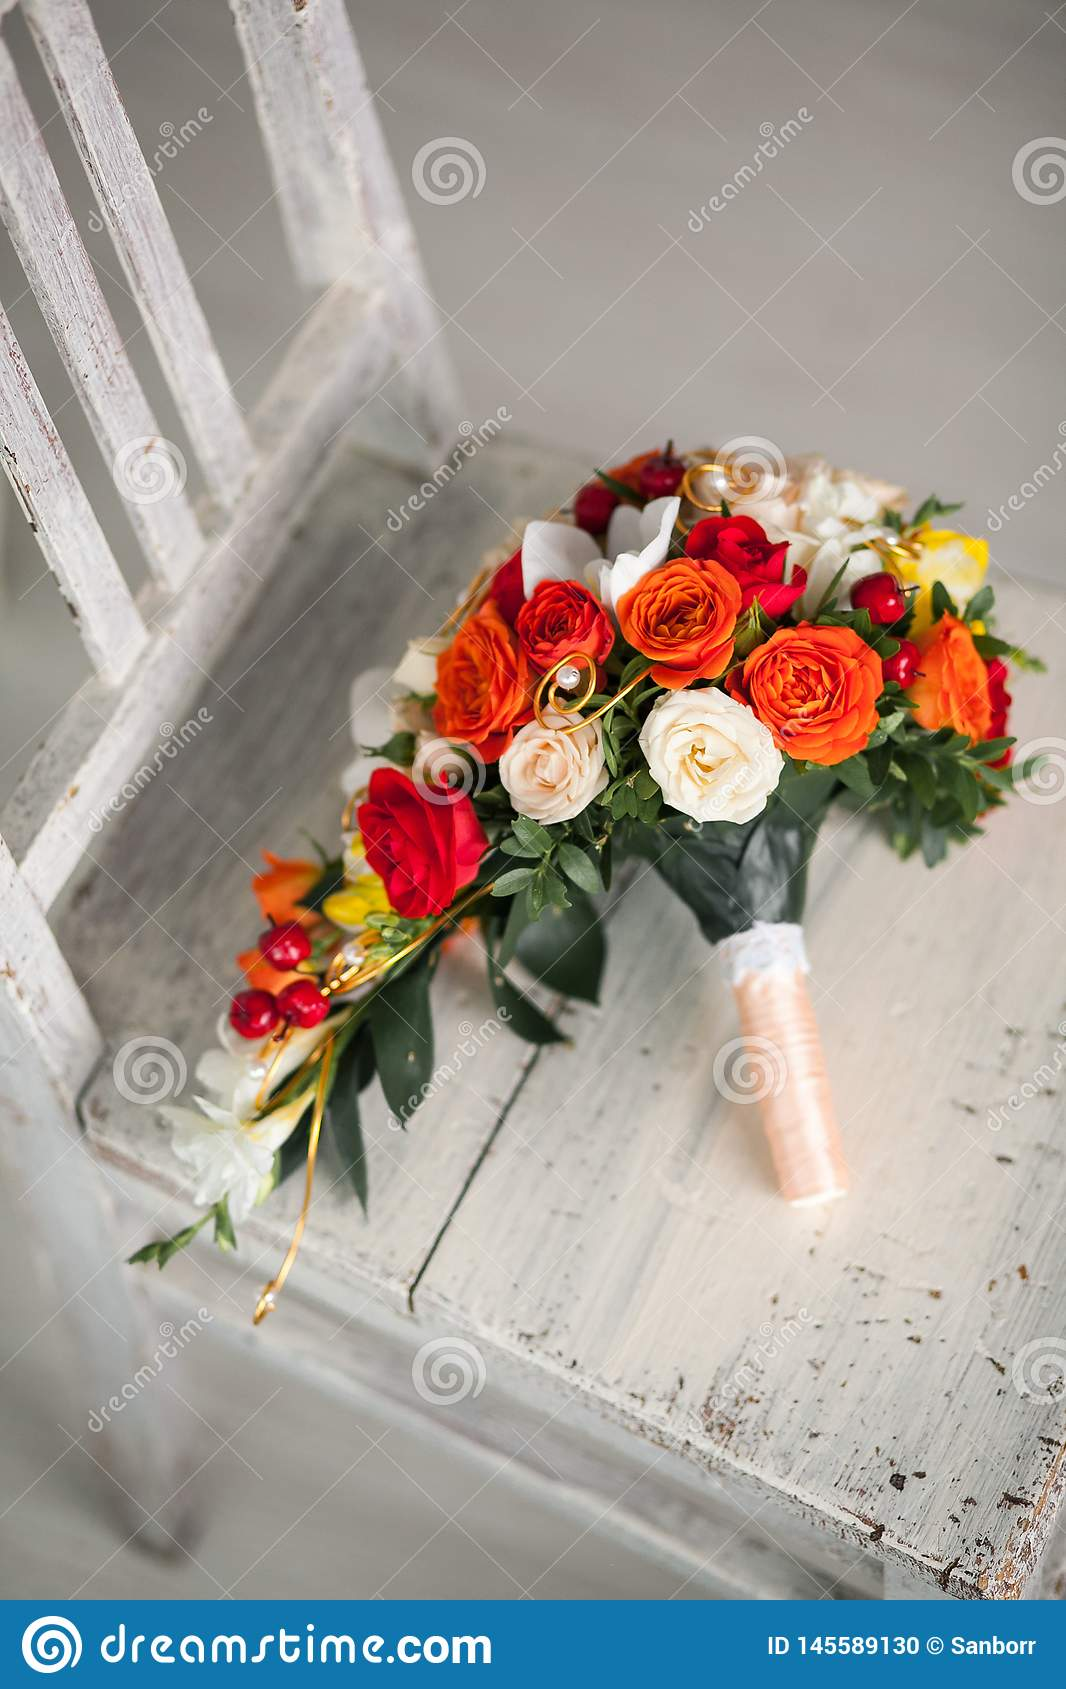 Beautiful wedding bouquet on an old worn wooden chair, close-up. The bride`s bouquet of white, orange and red roses, tied with a